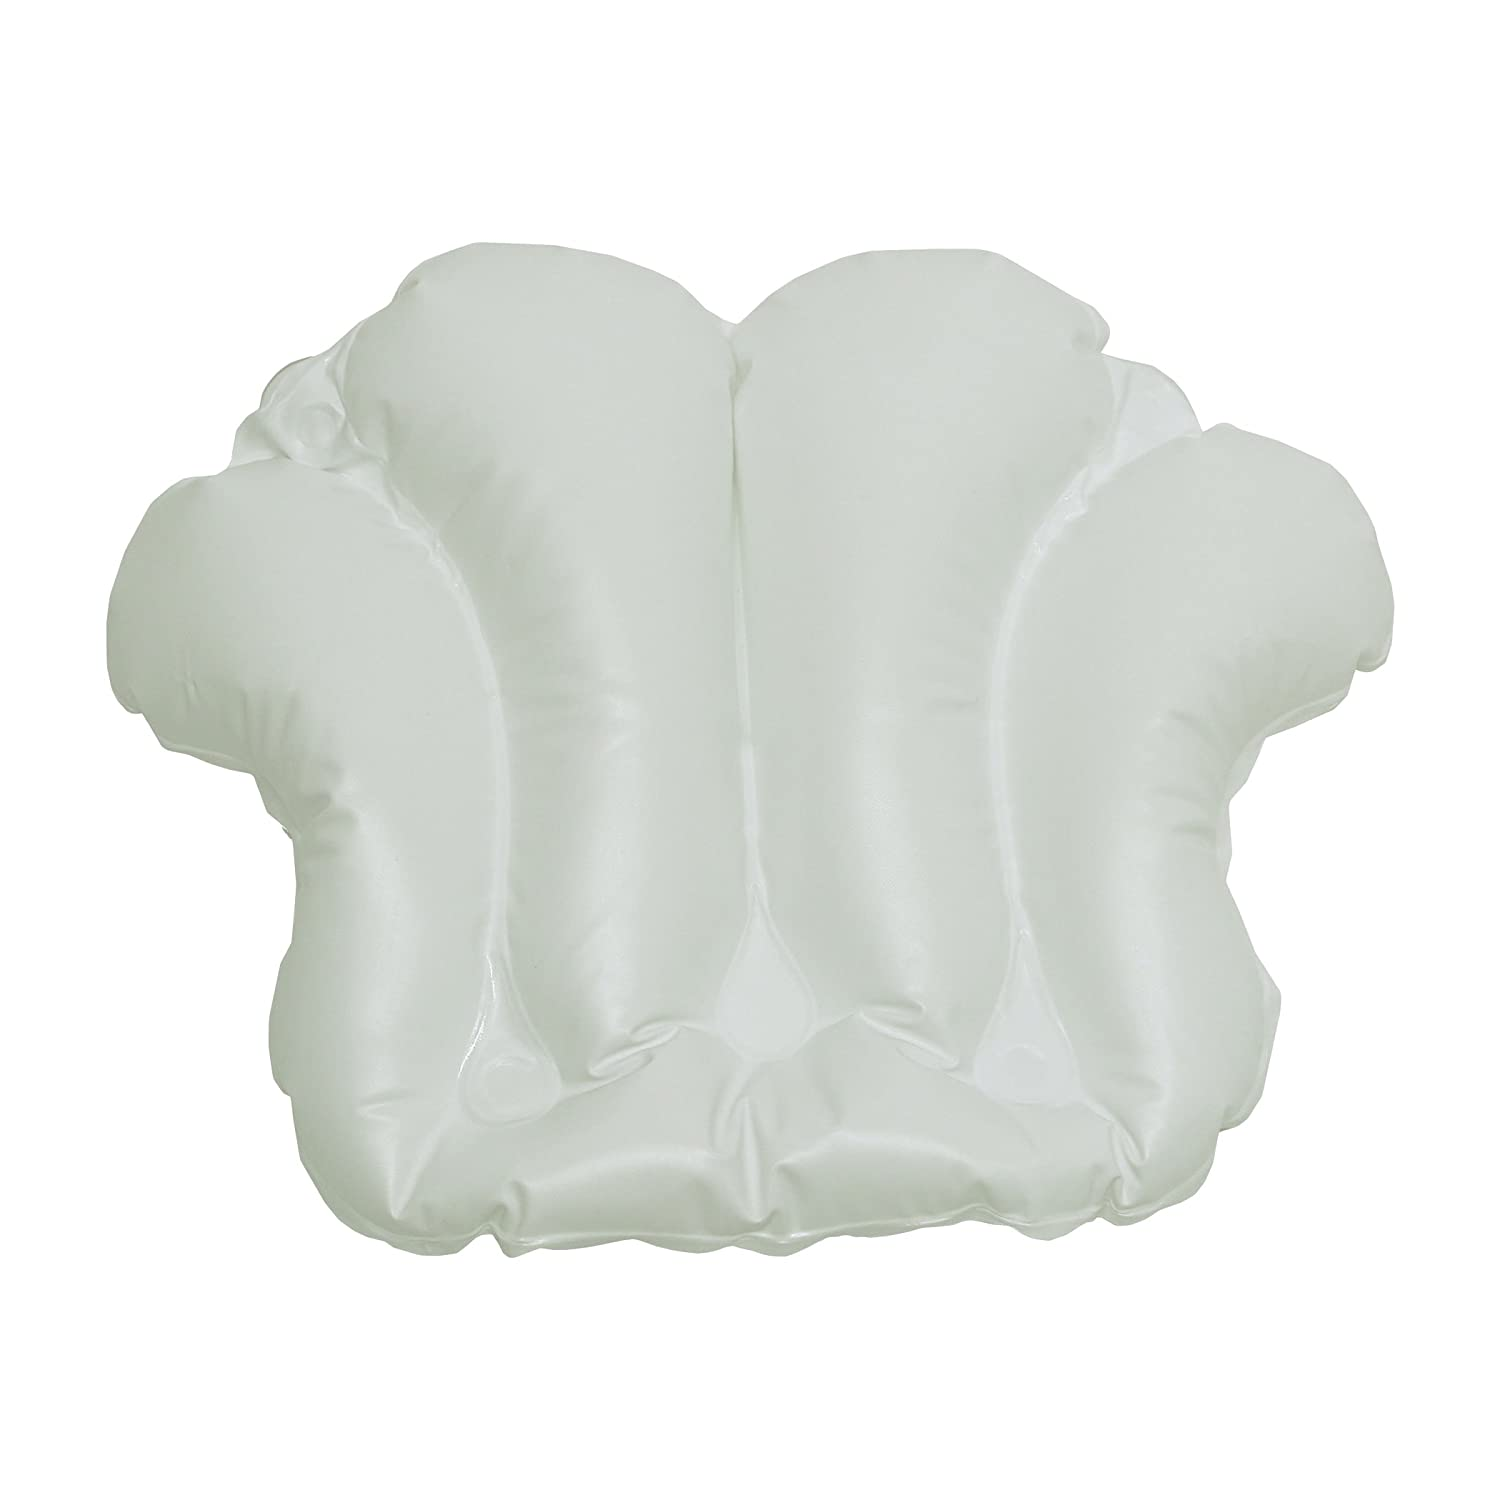 "Richards Homewares Luxury Spa Bath Pillow – 100% PVC, Durable Vinyl Material – Inflatable – Non Slip with 4 Suction Cups – Neck & Shoulder Support – Waterproof - White - 18"" x 14.5"" x 3.8"" Inch Good Success 200701"